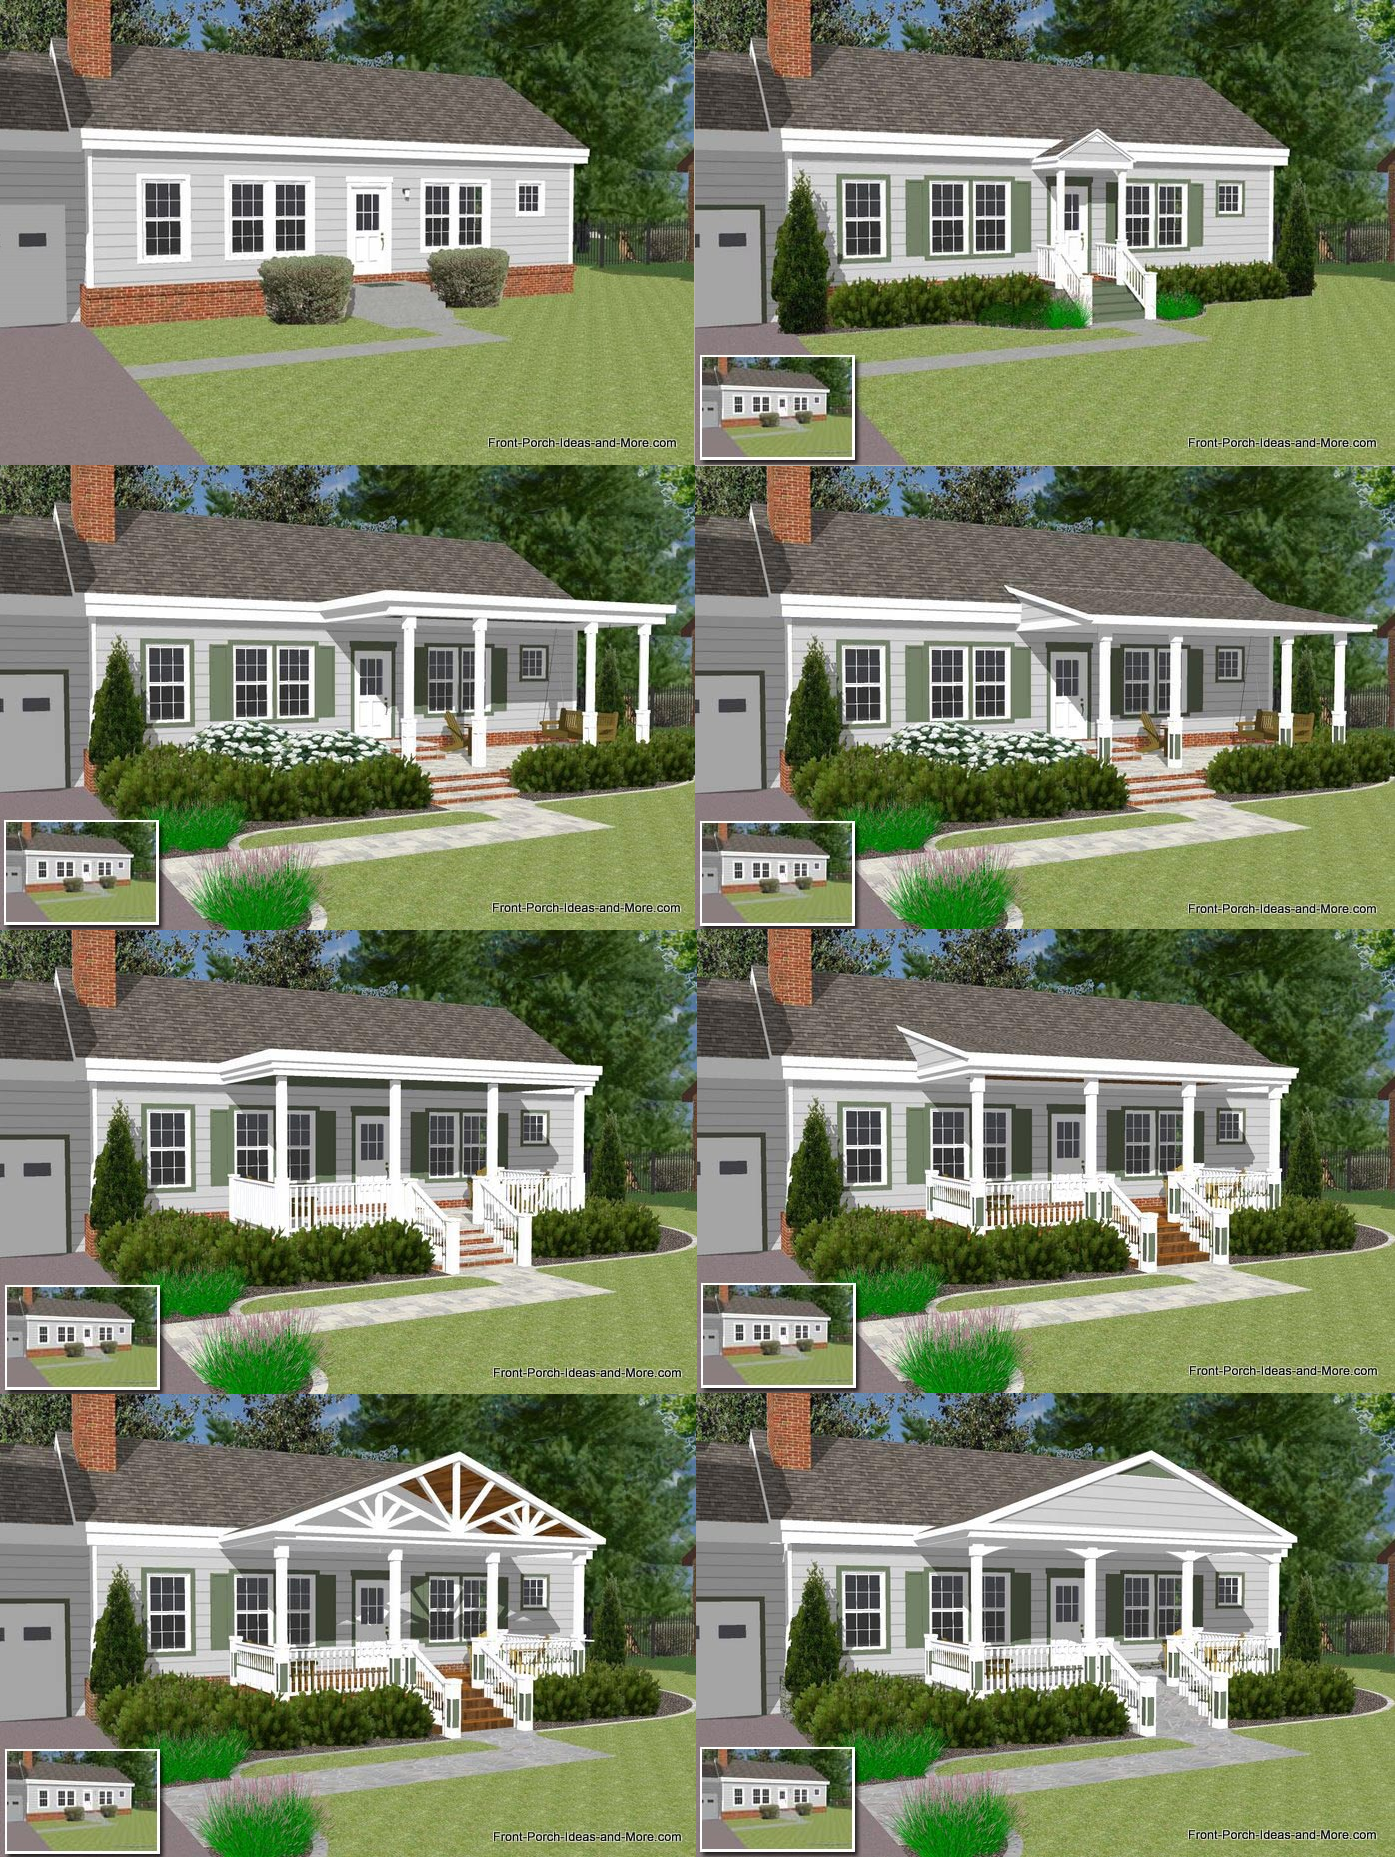 Great front porch designs illustrator on a basic ranch home design porch designs ranch style Front of home design ideas